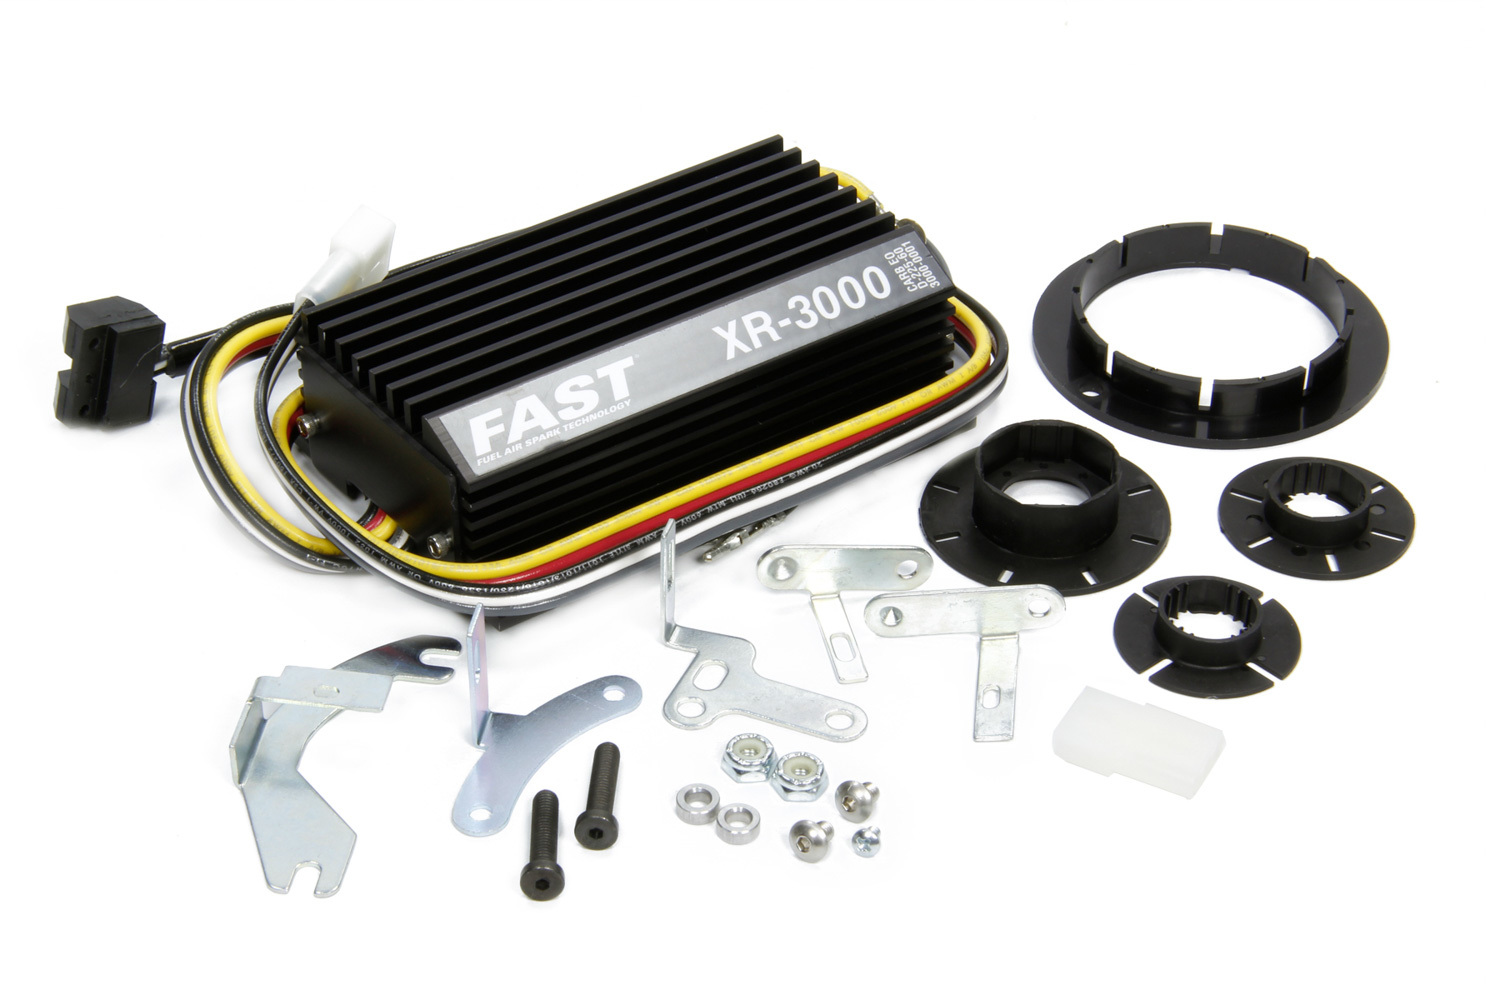 Fast Electronics 3000-0226 Ignition Conversion Kit, XR3000, Points to Electronic, Optical Trigger, Domestic 4/6/8-Cylinder/VW/Bosch 009 Distributor, Kit